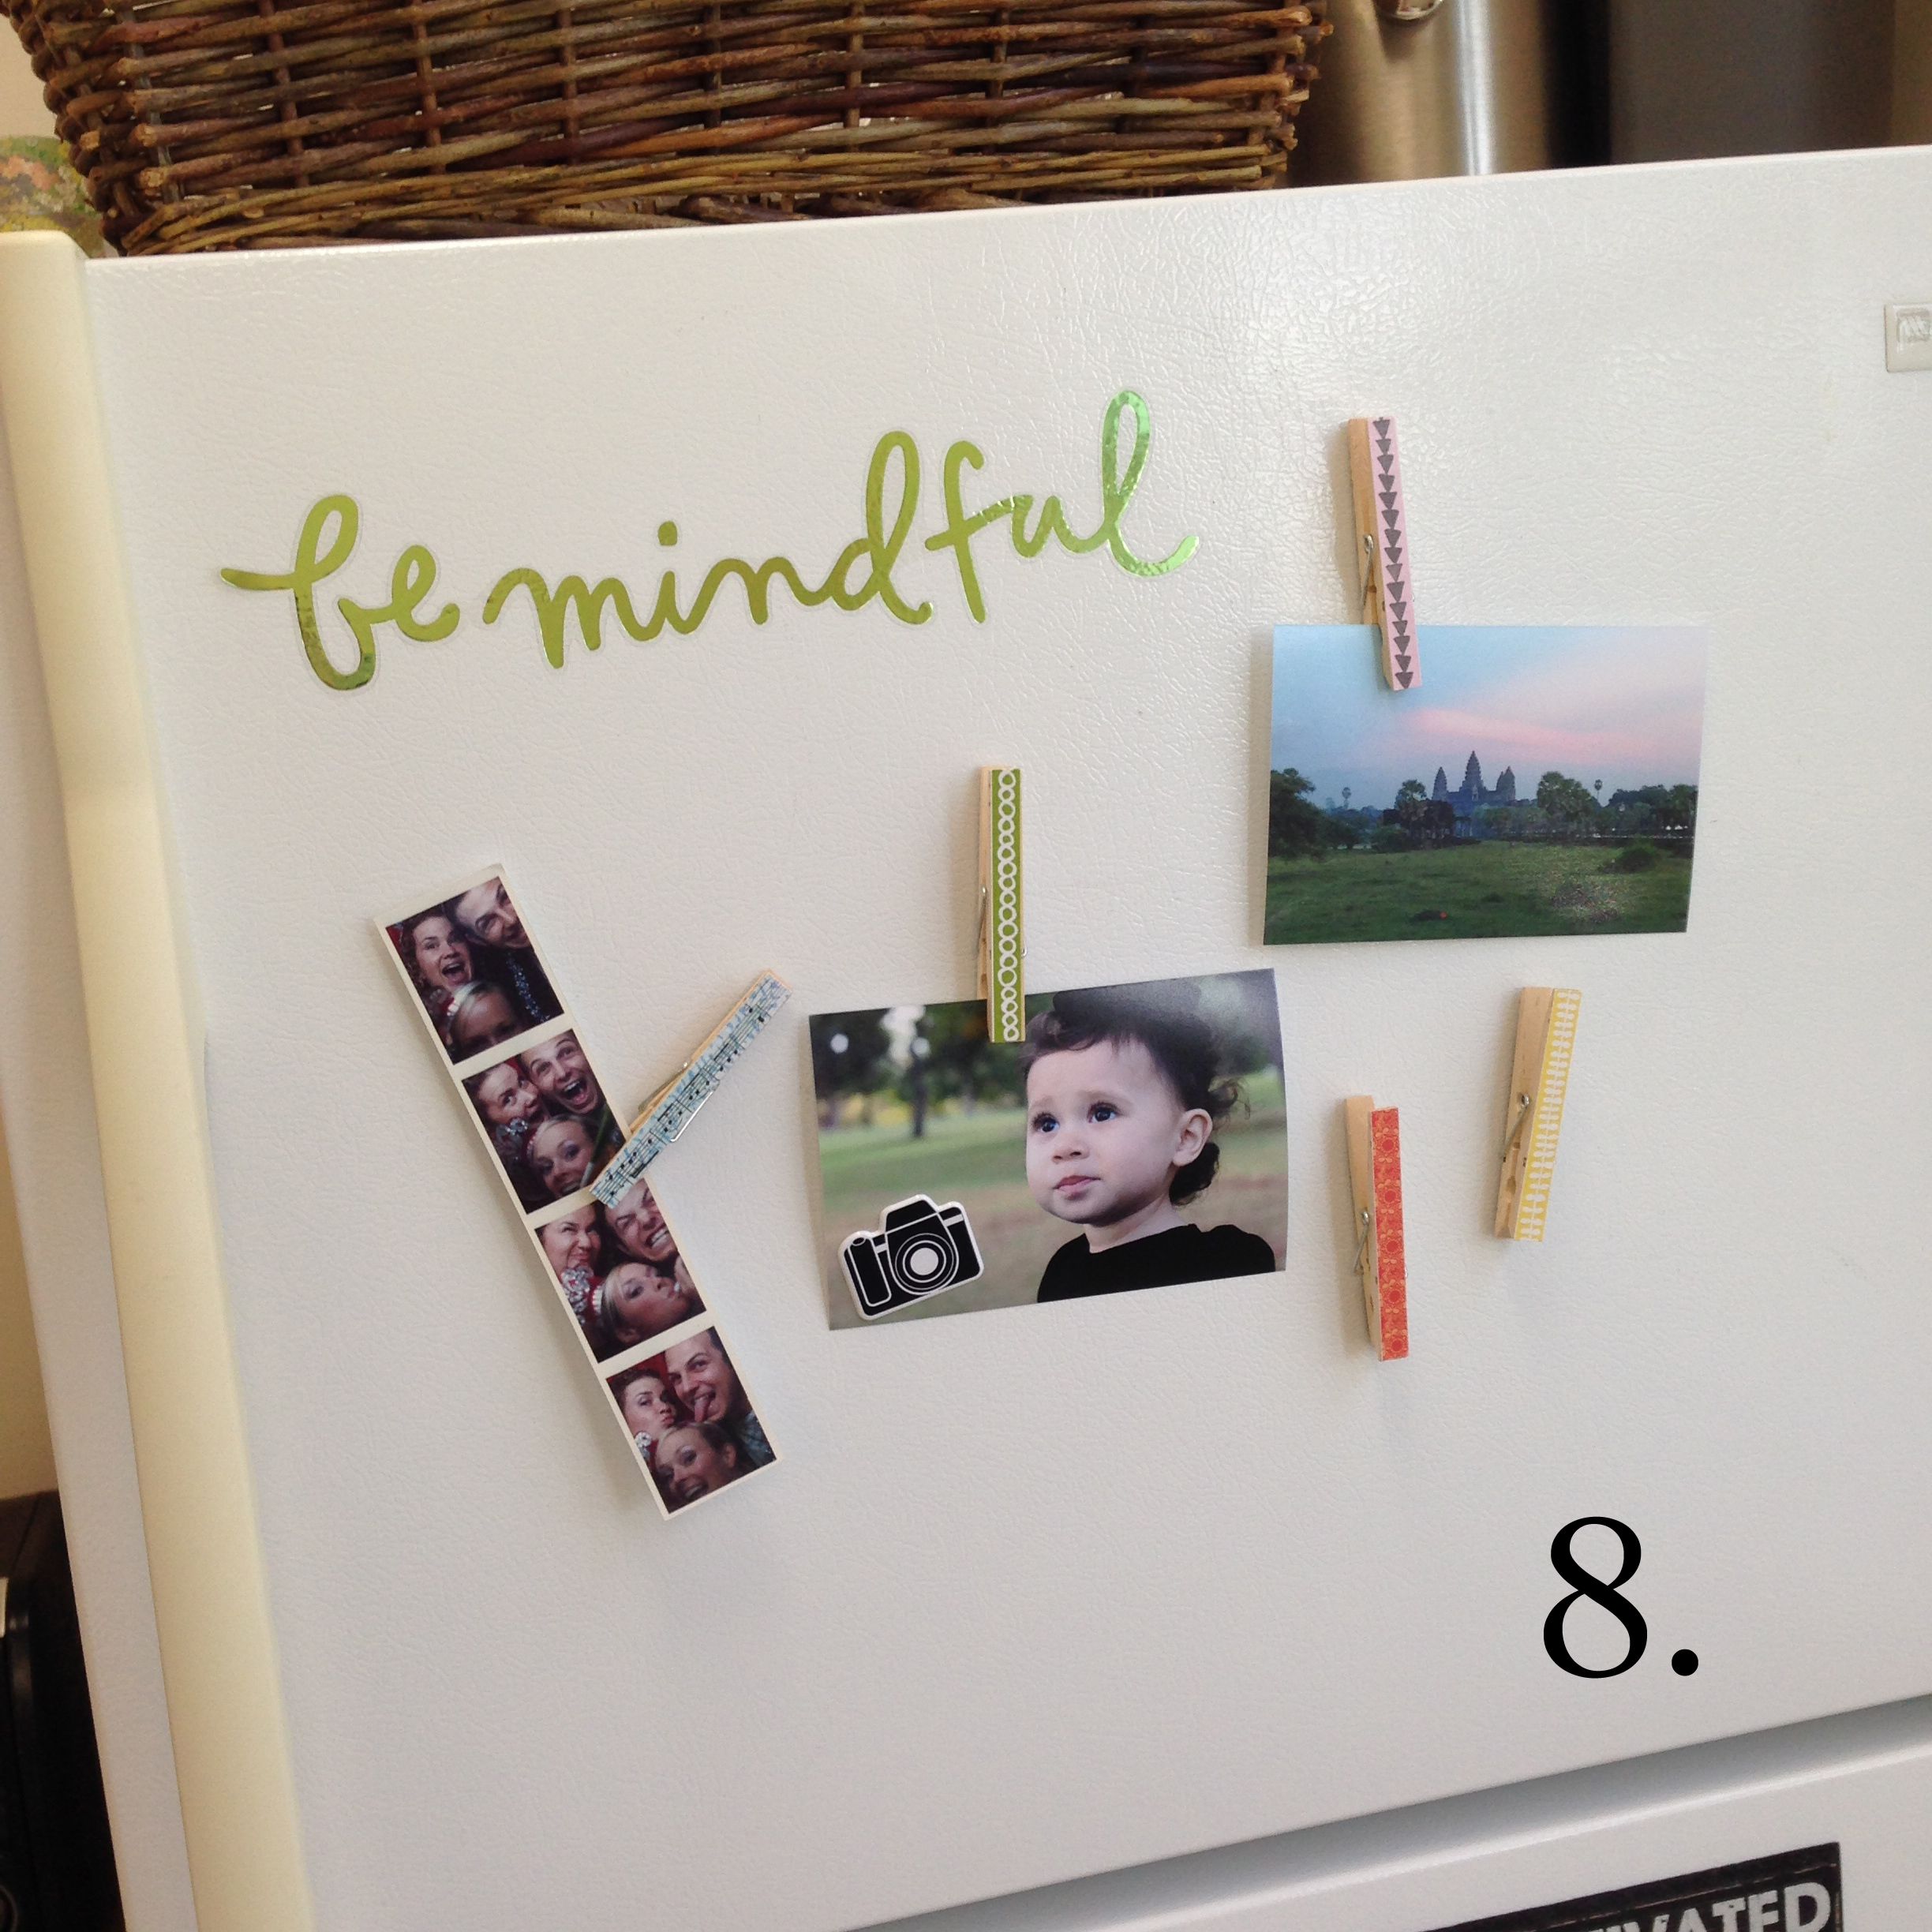 8. Foil 'be mindful' sticker on fridge. Great reminder for your day..jpg